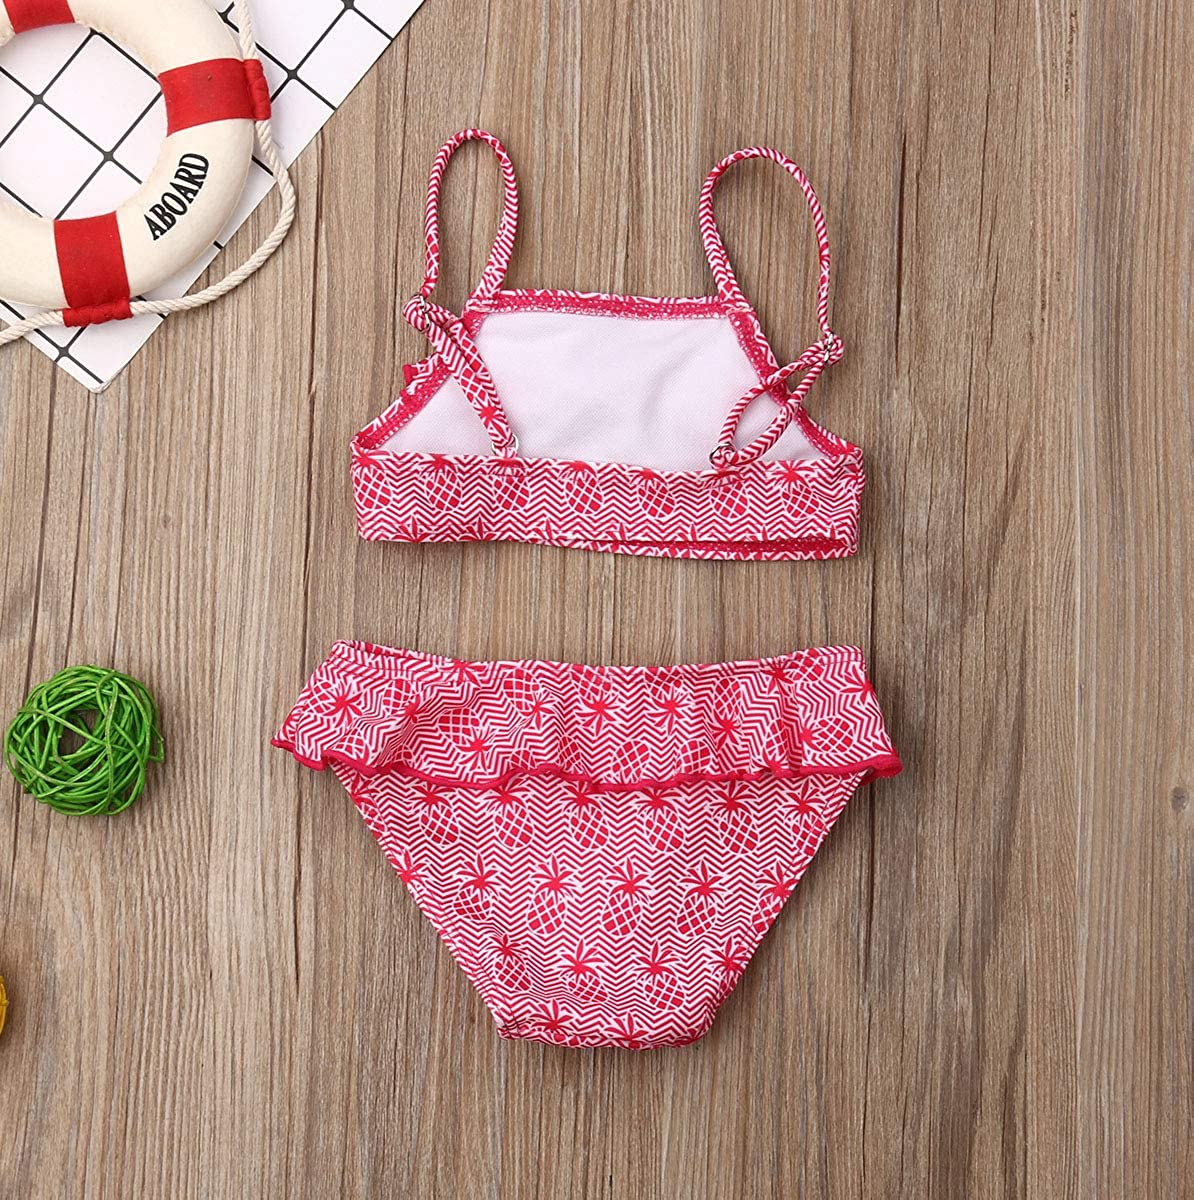 remeo suit Infant Baby Big Little Sister Pineapple Print Ruffle Matching Swimsuit Outfit Bathing Suits